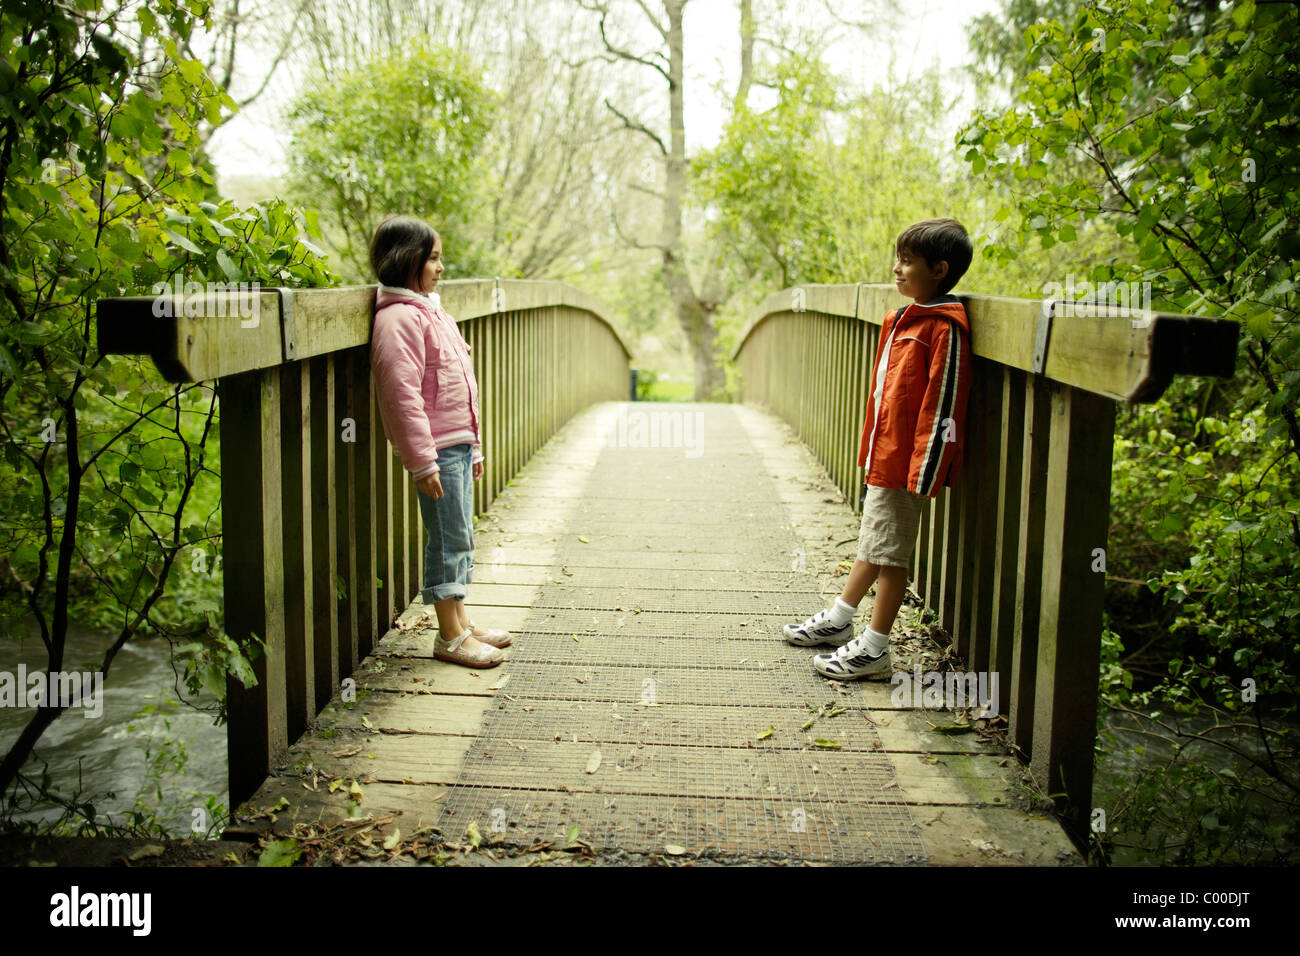 Boy and girl look at each other on wooden bridge. - Stock Image